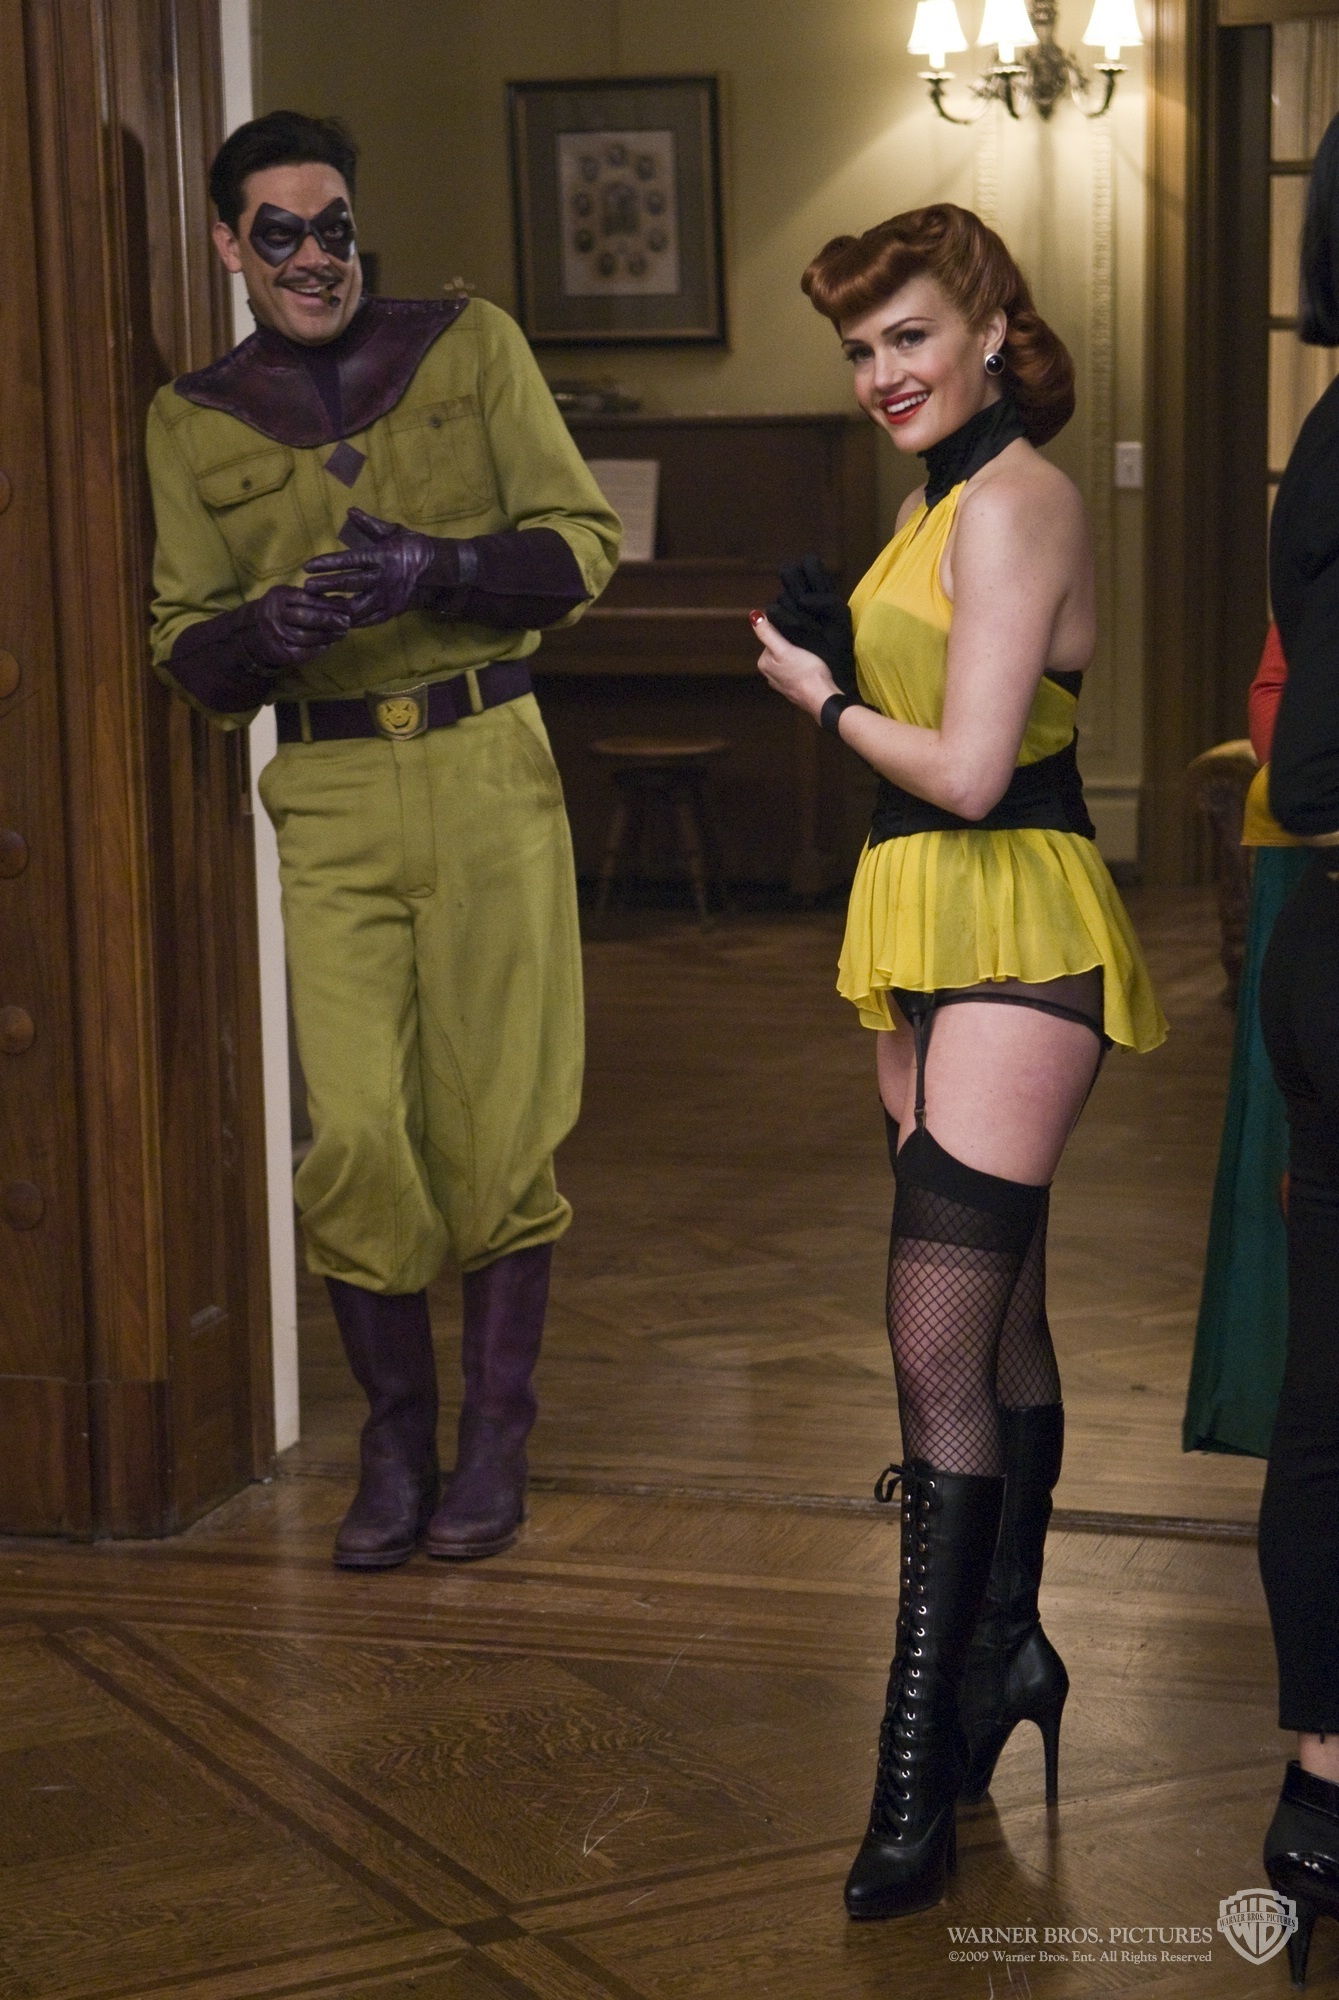 The-Comedian-and-Silk-Spectre-I-watchmen-19577036-1339-2000